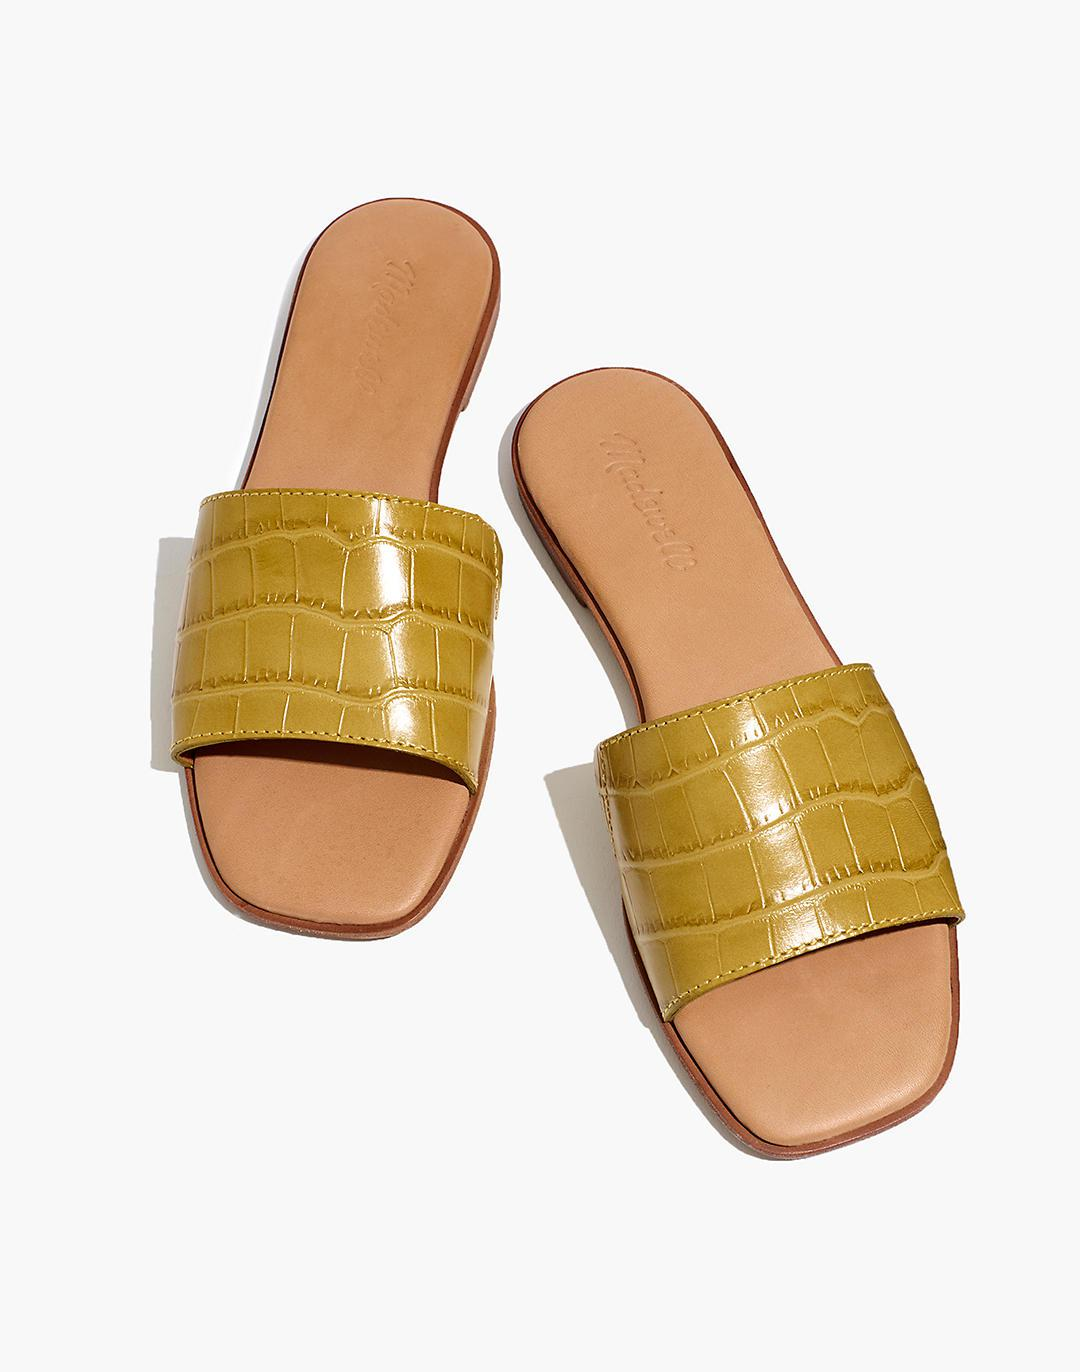 The Lianne Slide in Croc Embossed Leather